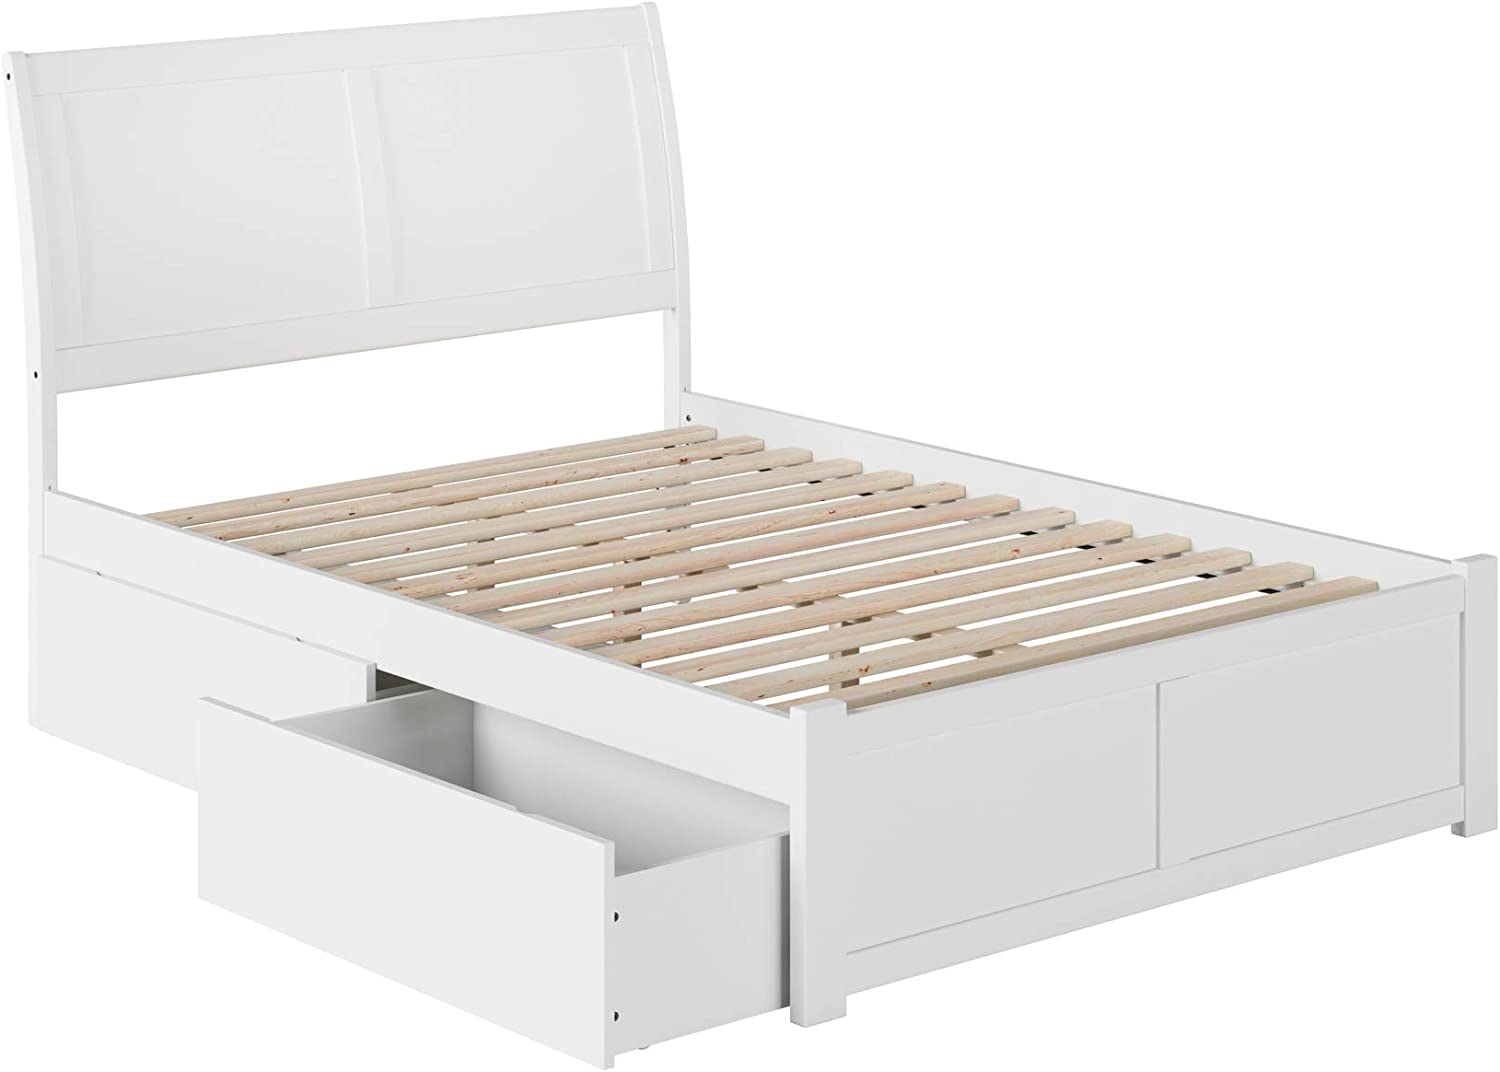 Atlantic Furniture Portland Platform Bed with 2 Urban Bed Drawers, Full, White